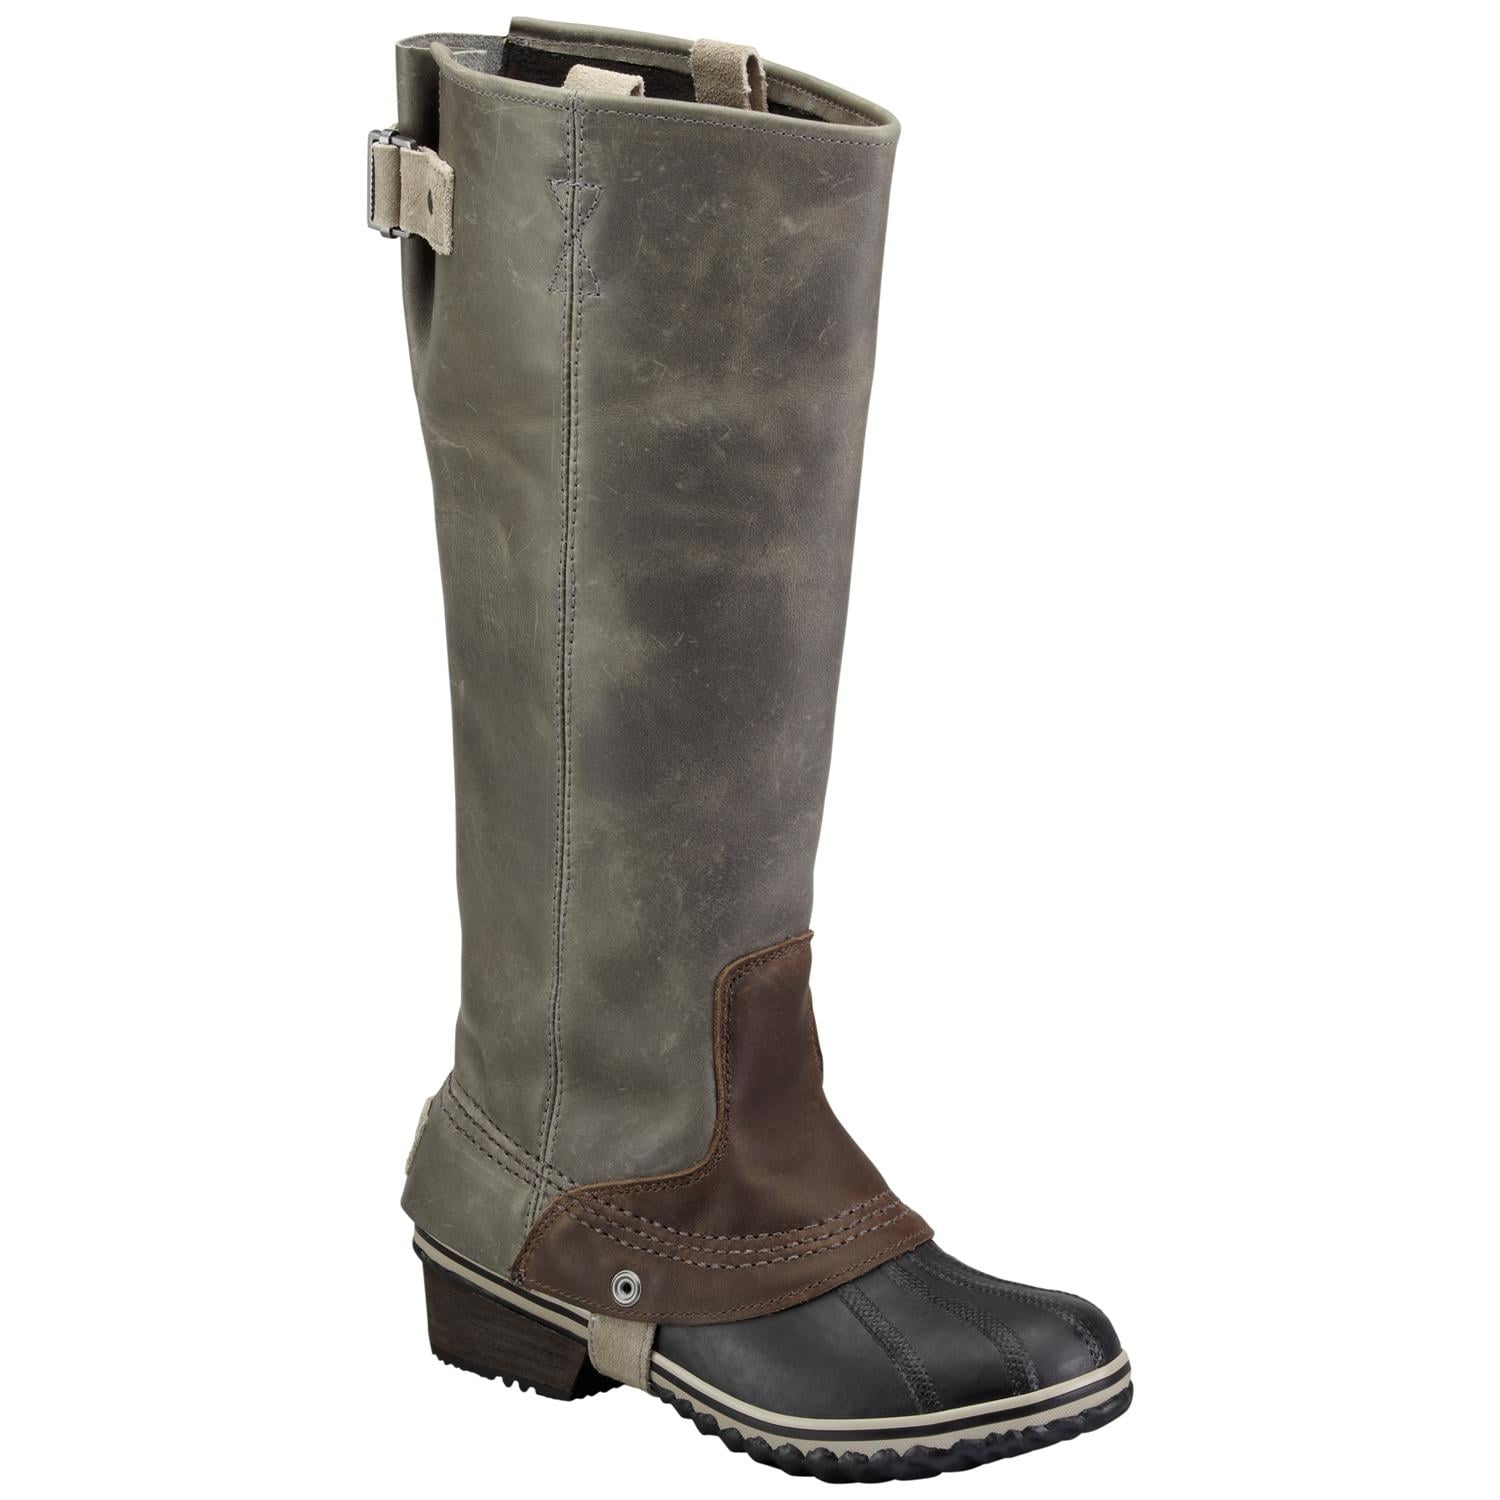 Don't believe for one second that boots have to be chunky and cumbersome to keep your feet and legs warm. This pair of Slimpack Riding Boots from Sorel ($210) has all the sleek appeal of a pair of stilettos and more warmth than you could ask for. — Justin Fenner, assistant editor